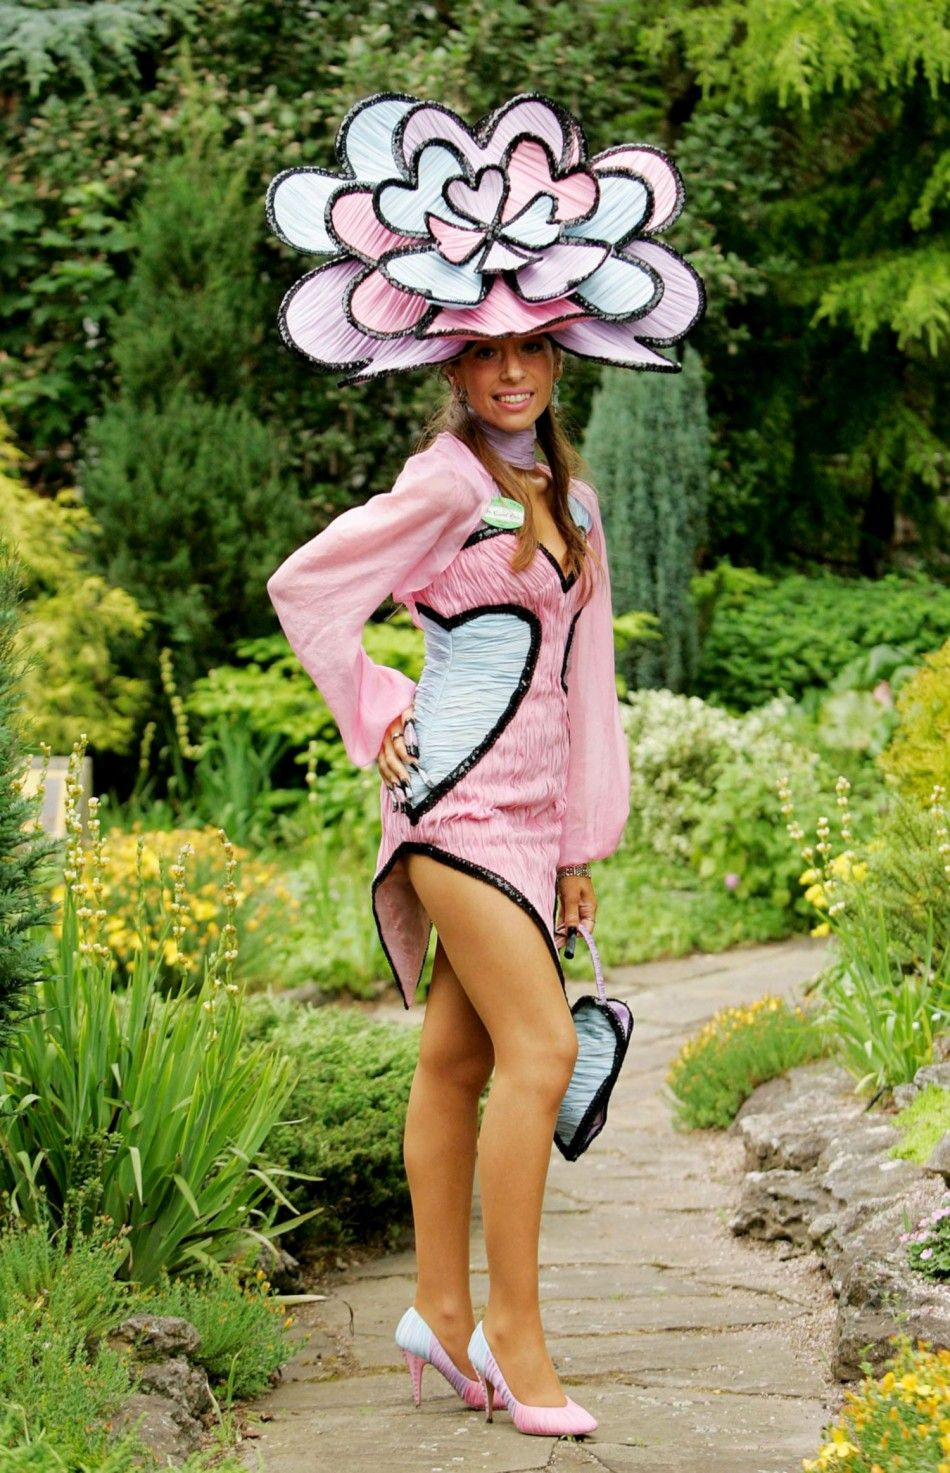 49+ Ascot ladies day dress code rules ideas in 2021